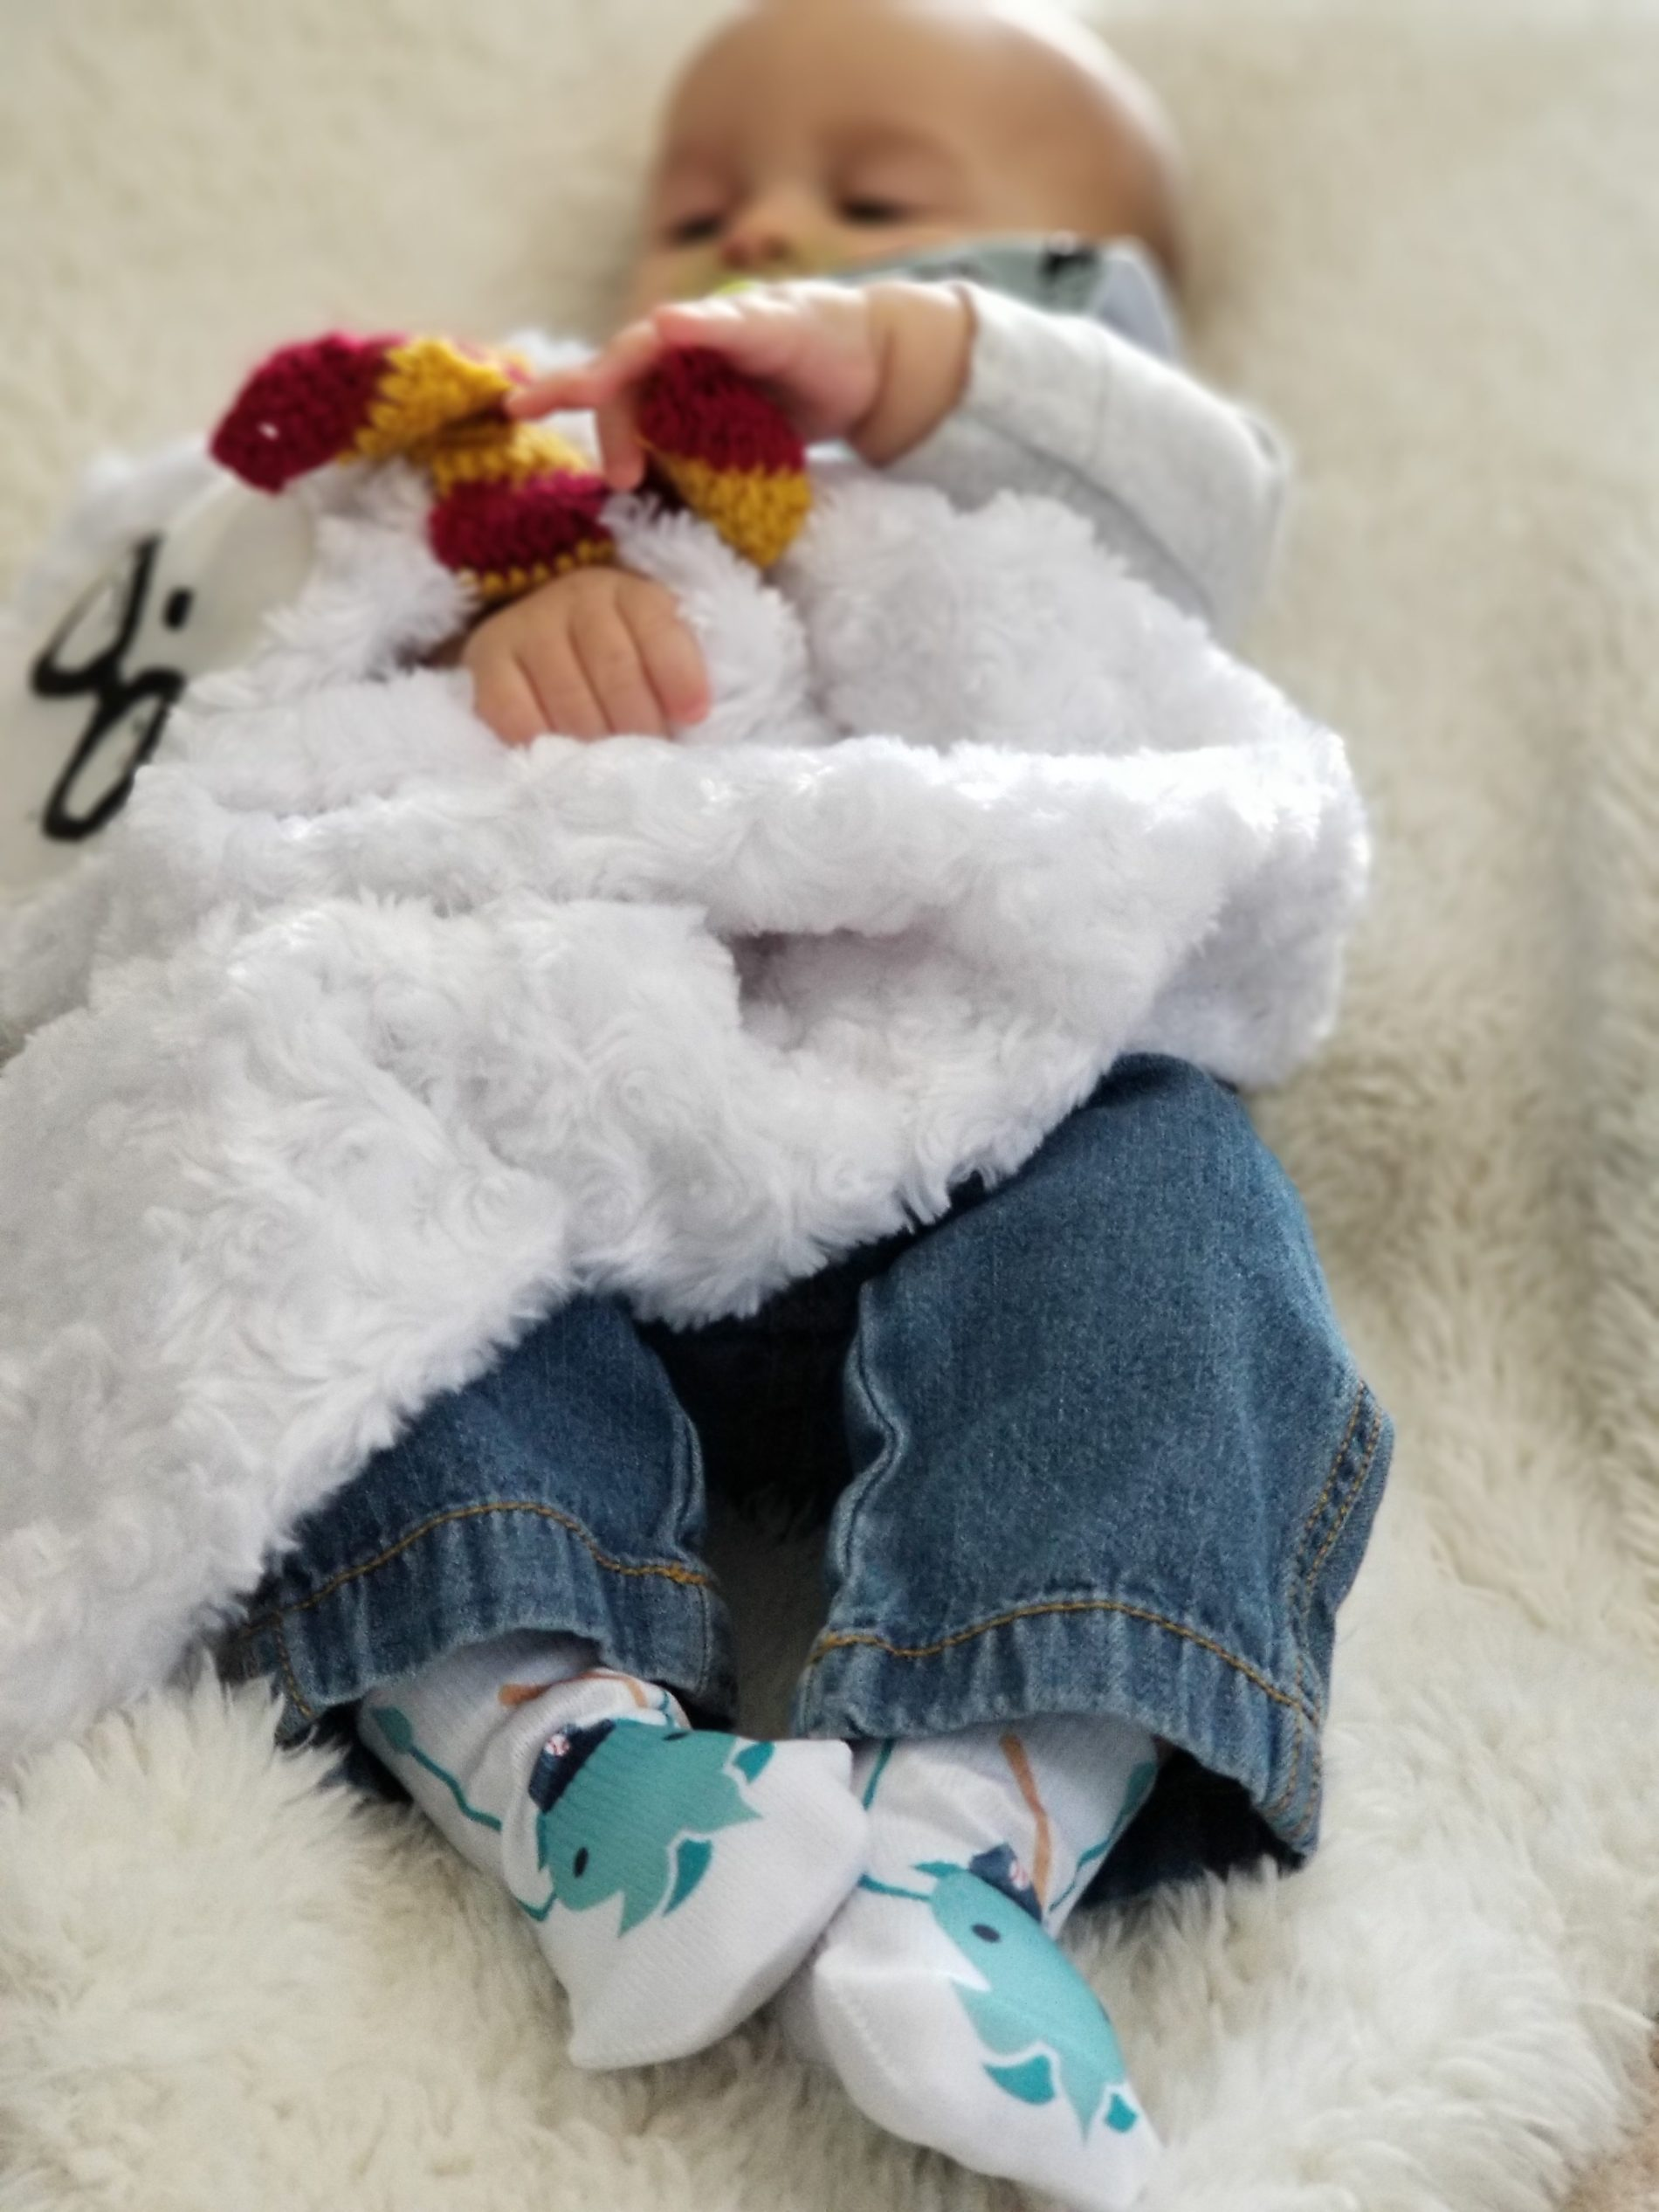 Baby Socks that stay on baby's feet!